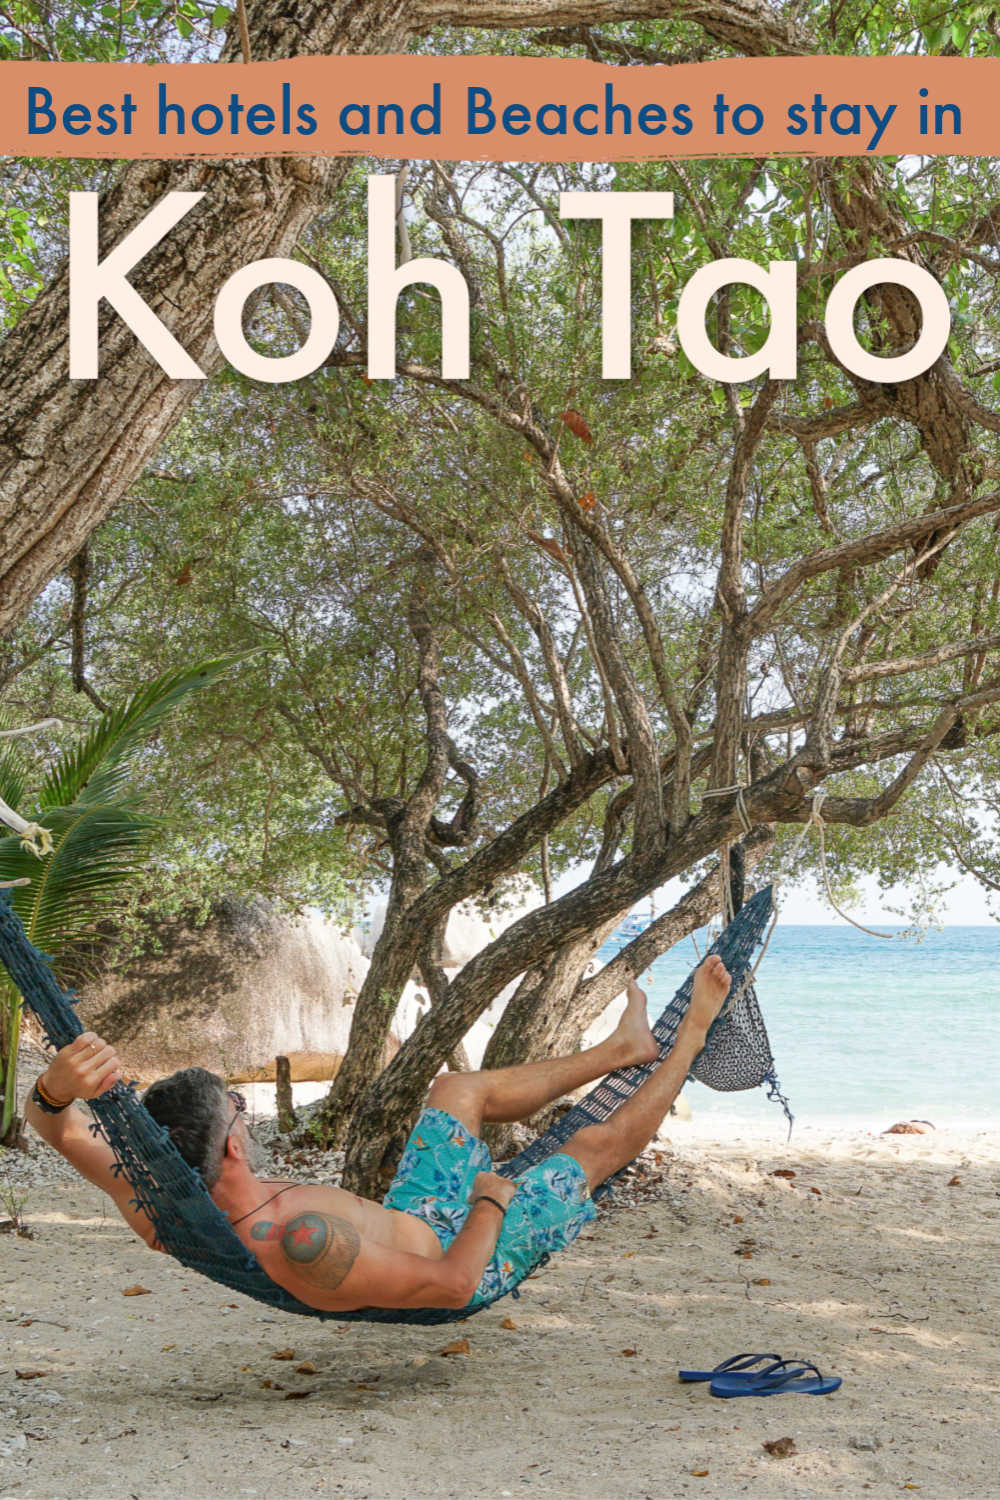 Koh Tao Accommodation Guide. Find out where to stay in Koh Tao, Thailand. We listed the best beaches on the island with the pros and cons of staying in each of them, plus hotel recommendations in all the areas. From luxury resorts to the best hostels and hotels in Koh Tao, we covered them all, so you can choose the perfect room for an unforgettable trip to this fantastic Thai Island.  #kohtaohotel #kohtaodiveresort #kohtaoresort #kohtaohostel #kohtaothailand